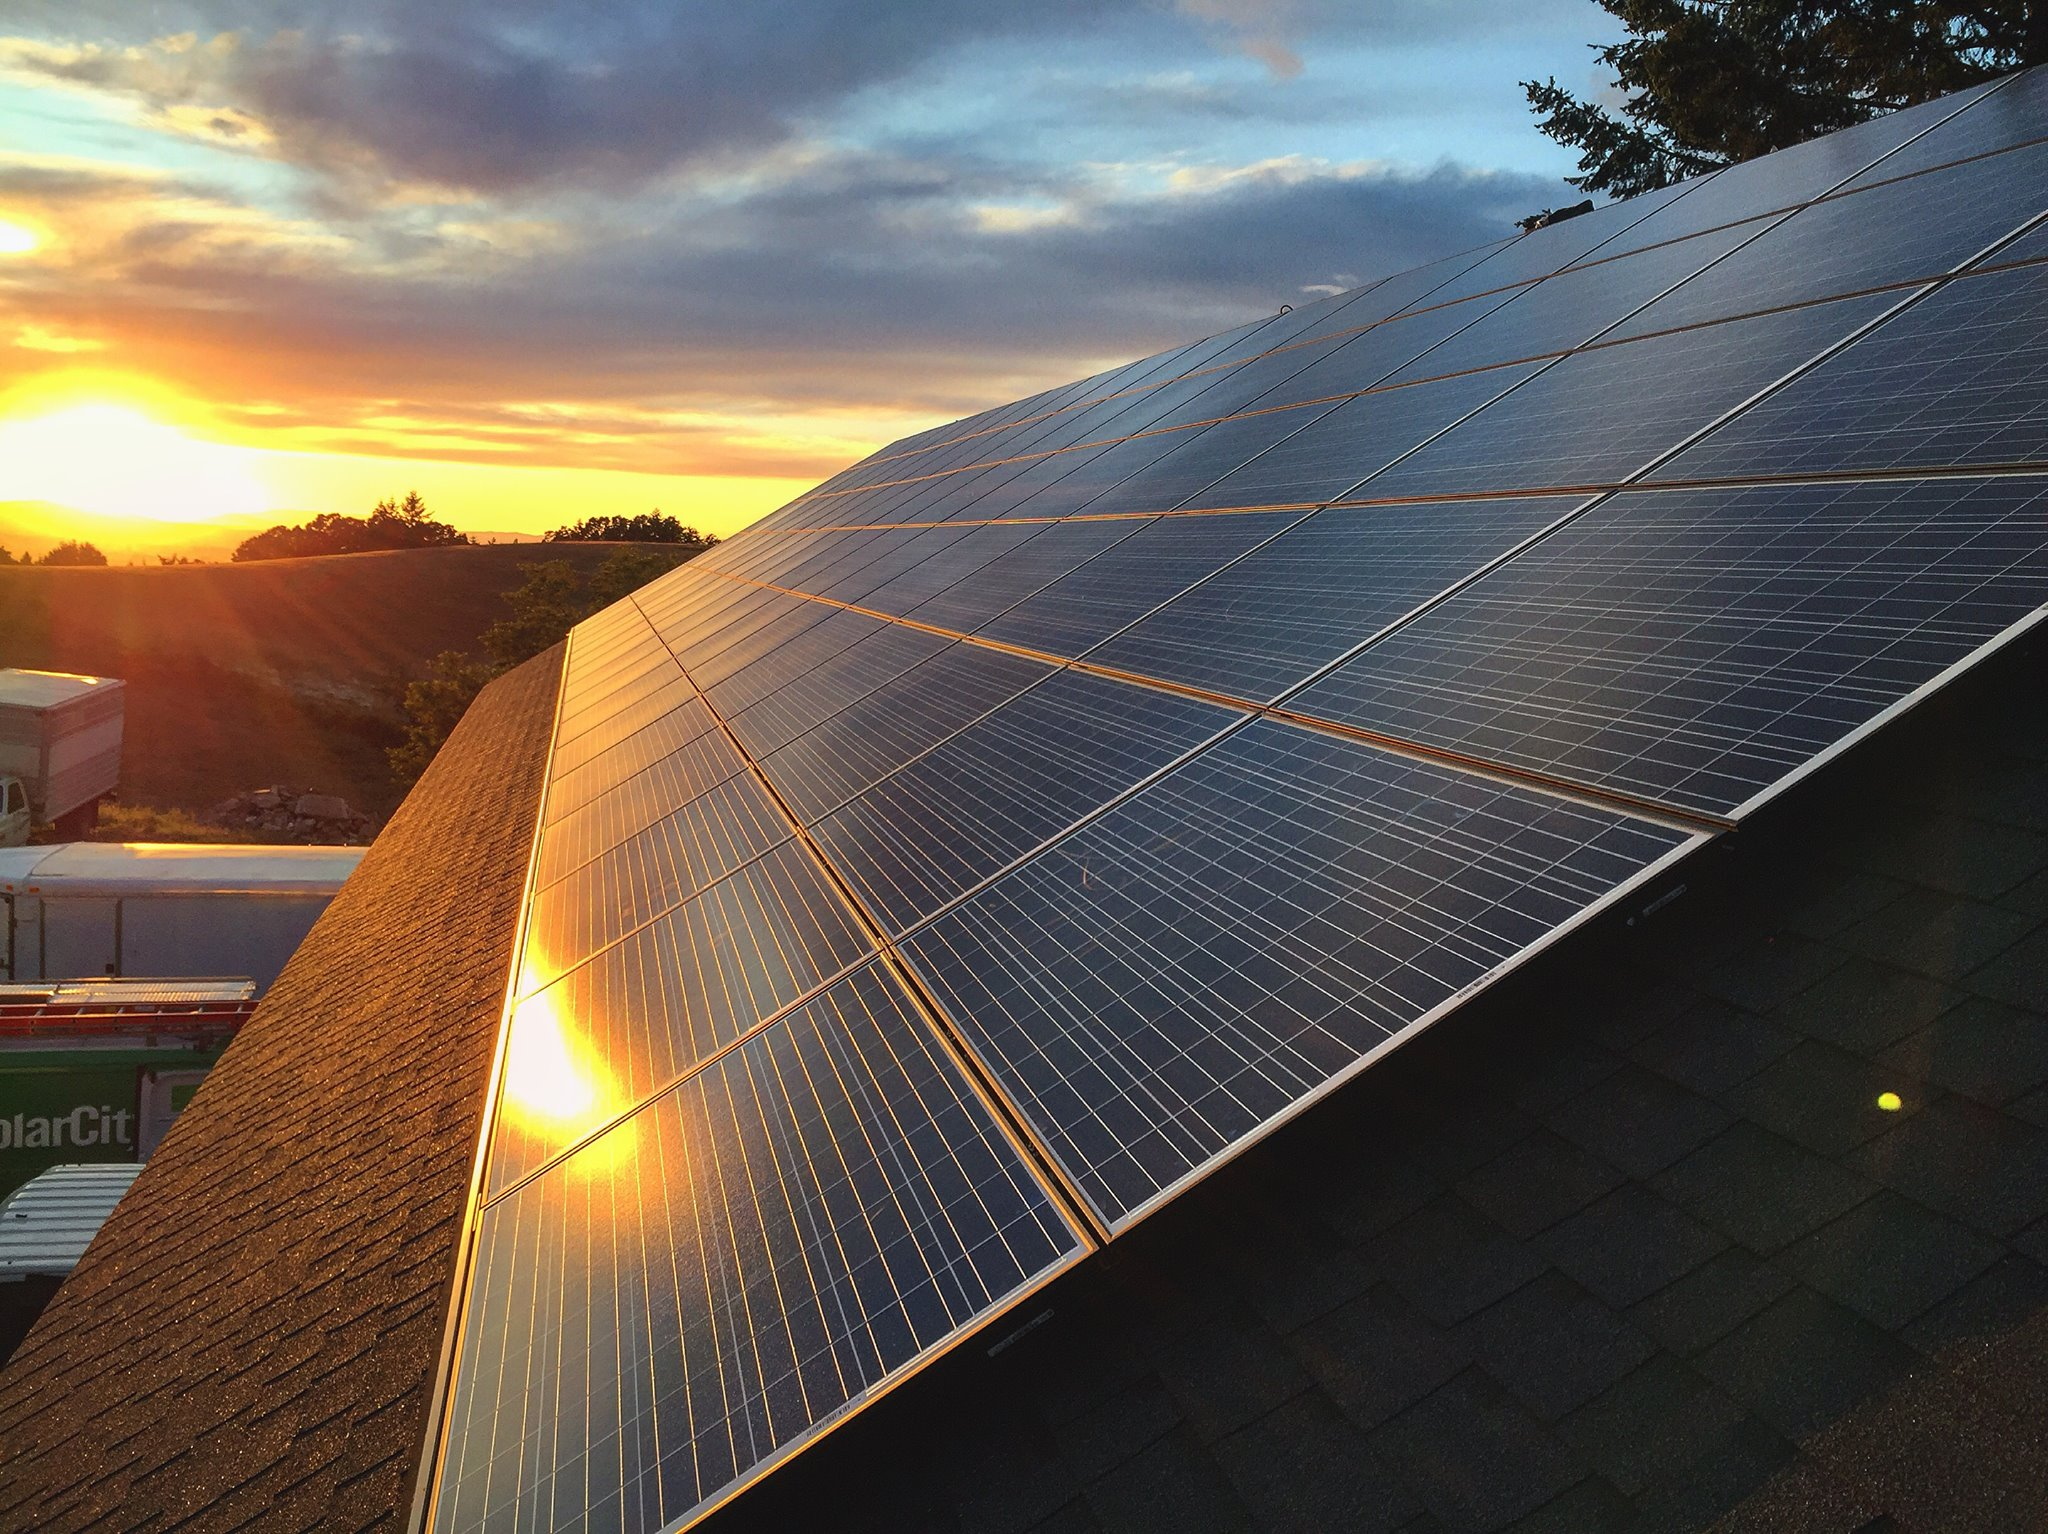 Solarcity Laying Off 141 Employees In Roseville Office